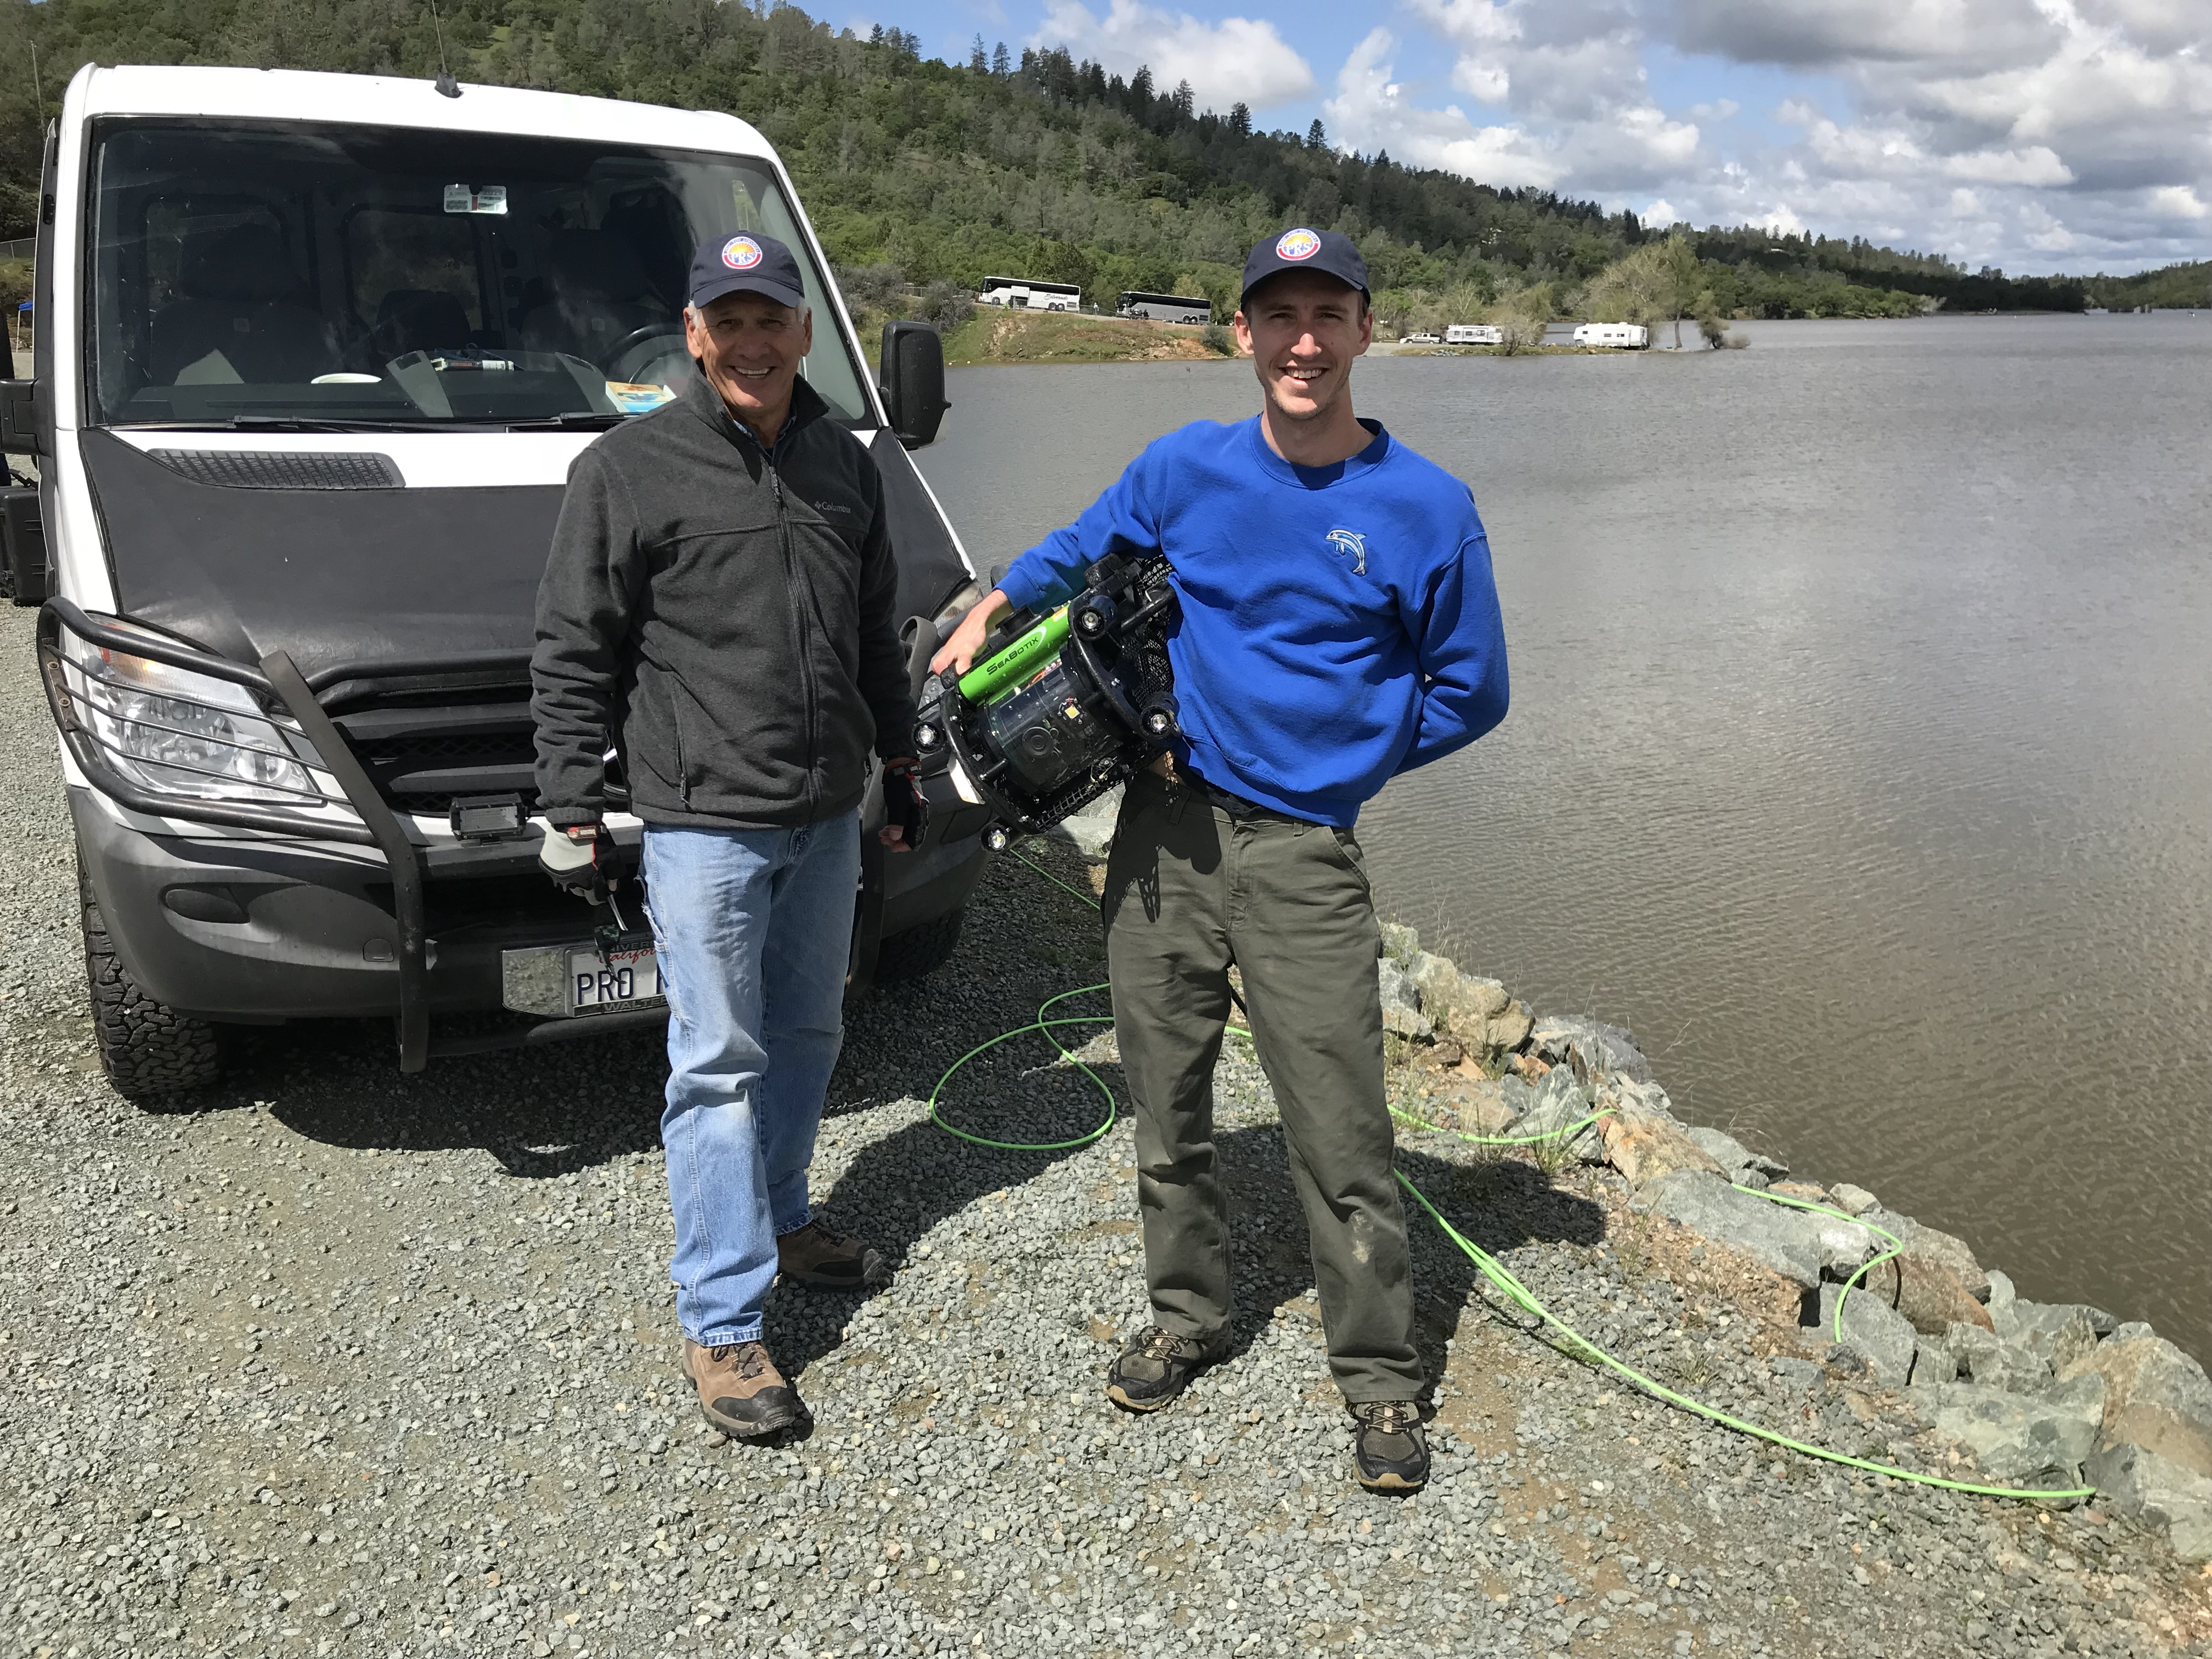 Mark Stepanik and his son with Underwater ROV